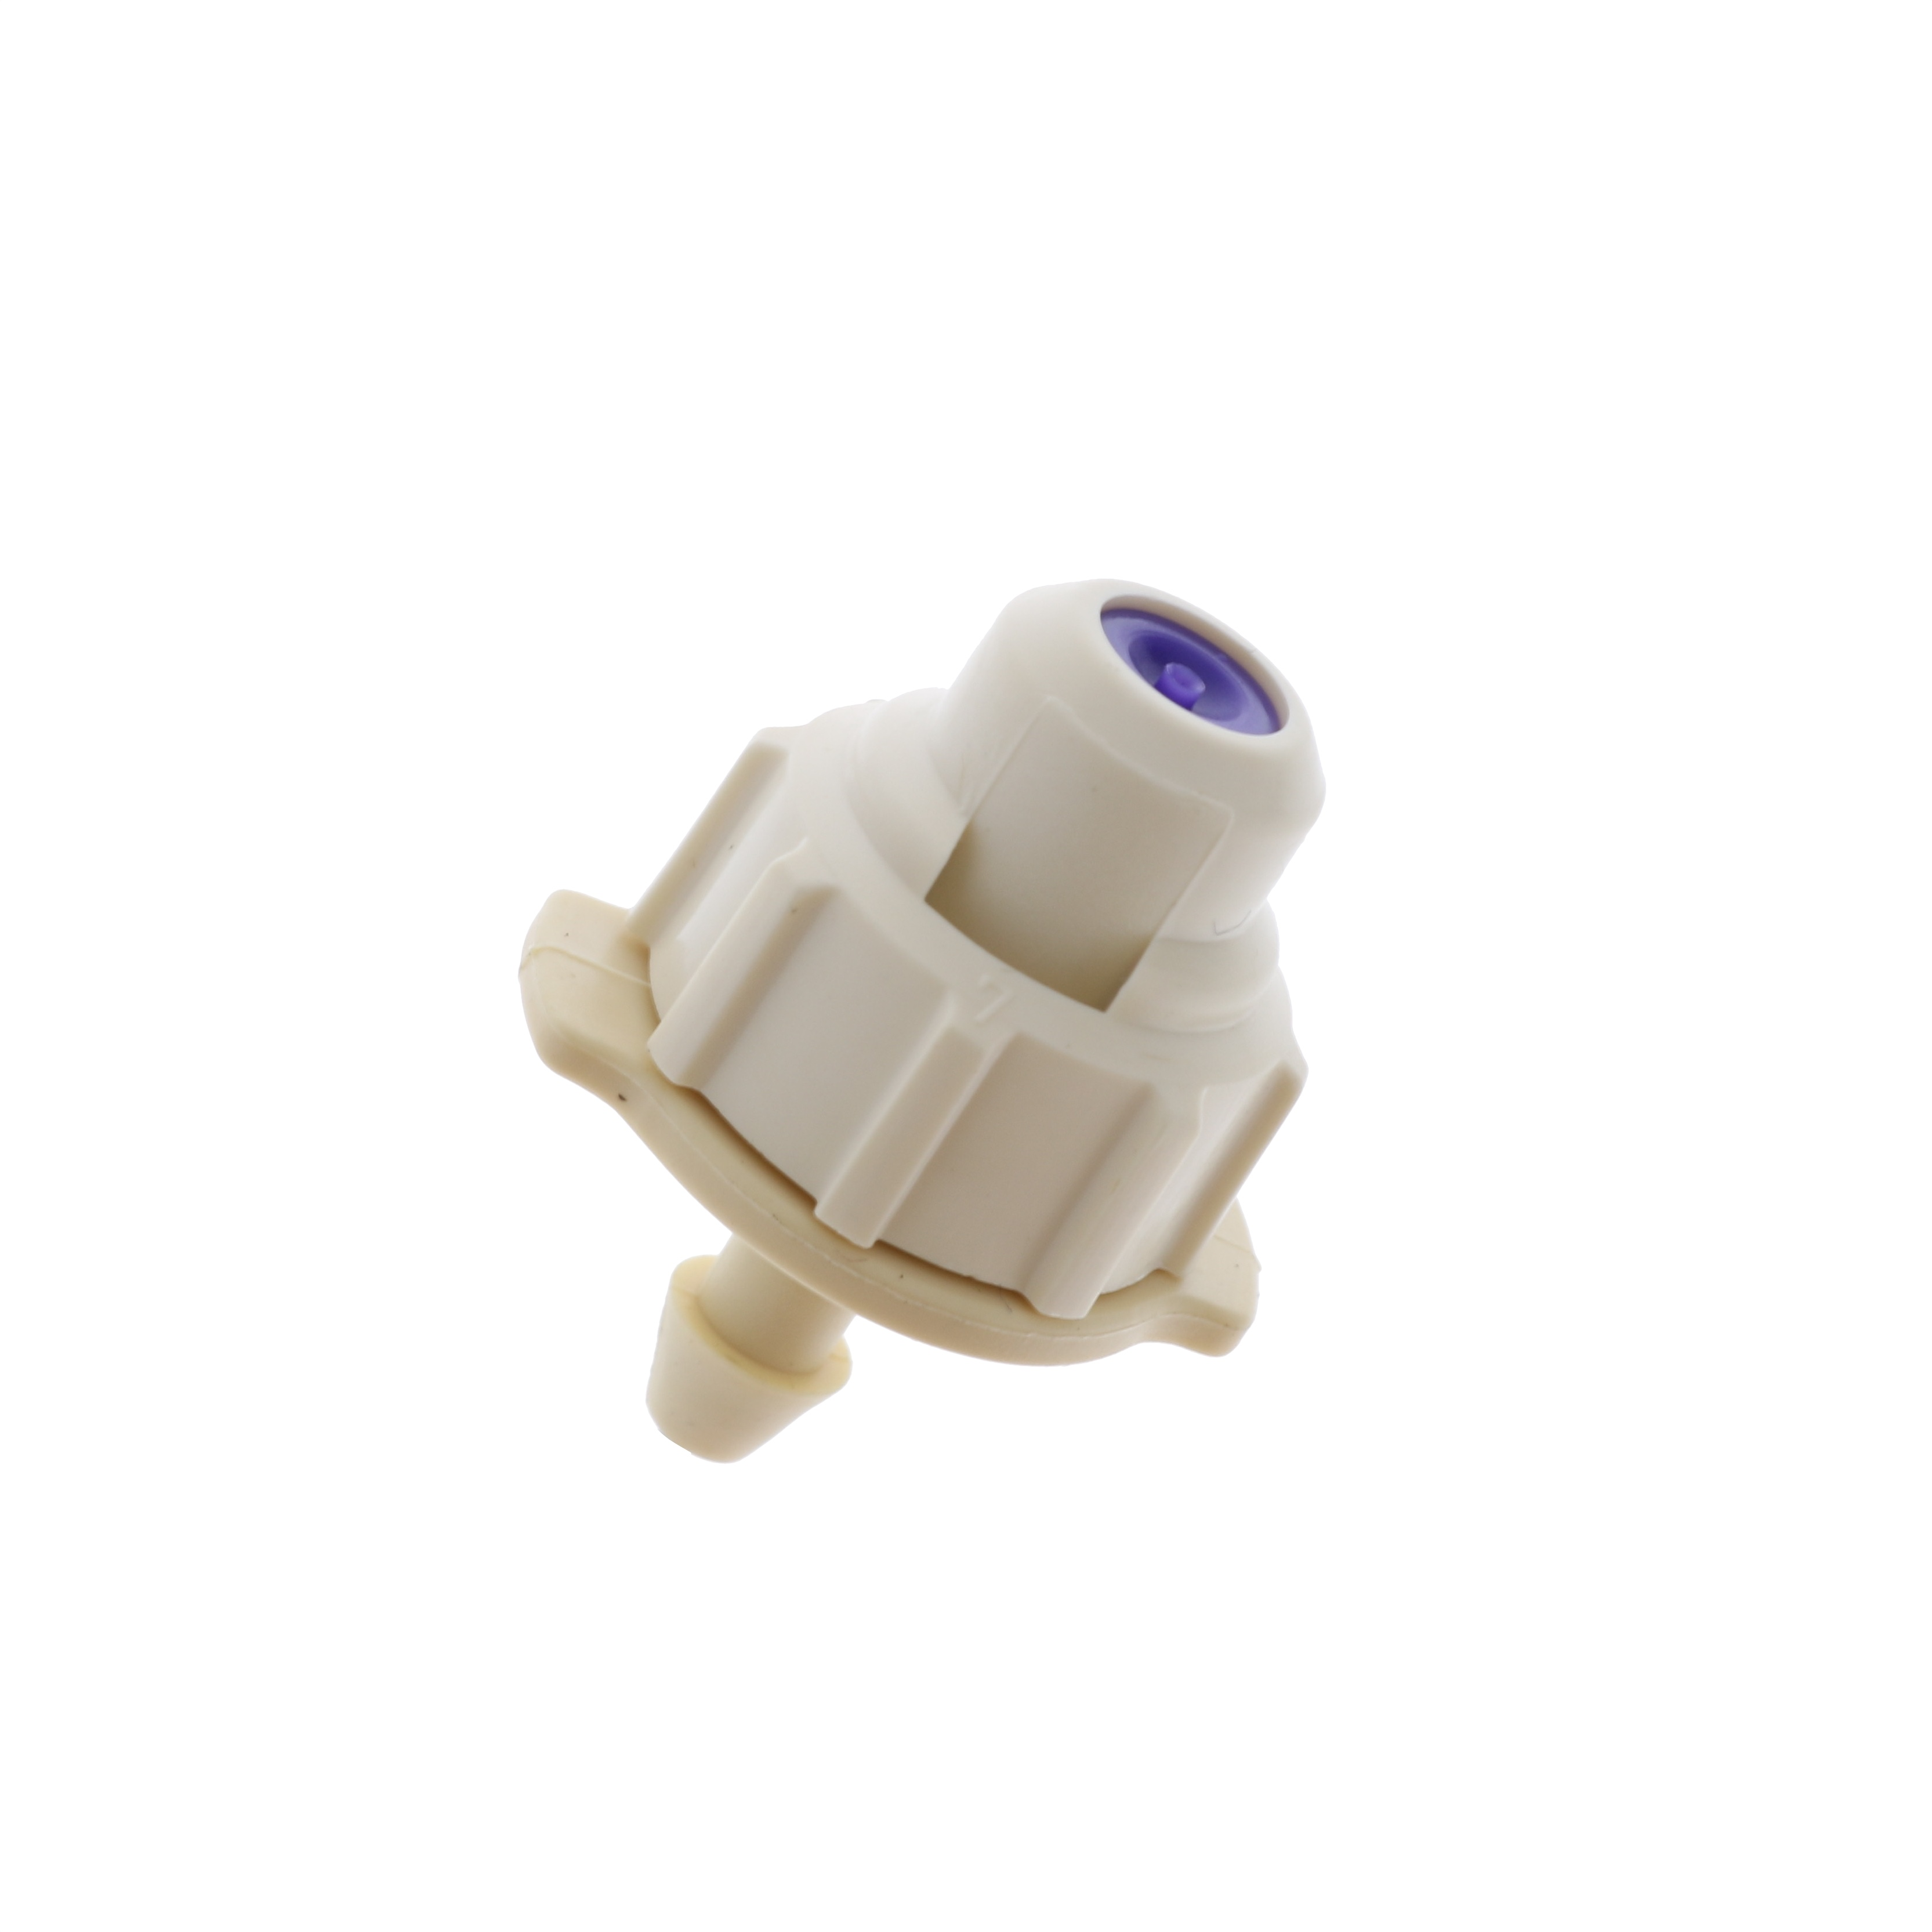 Dig 3 4 GPH Misting Nozzle on Barb-5 pack by